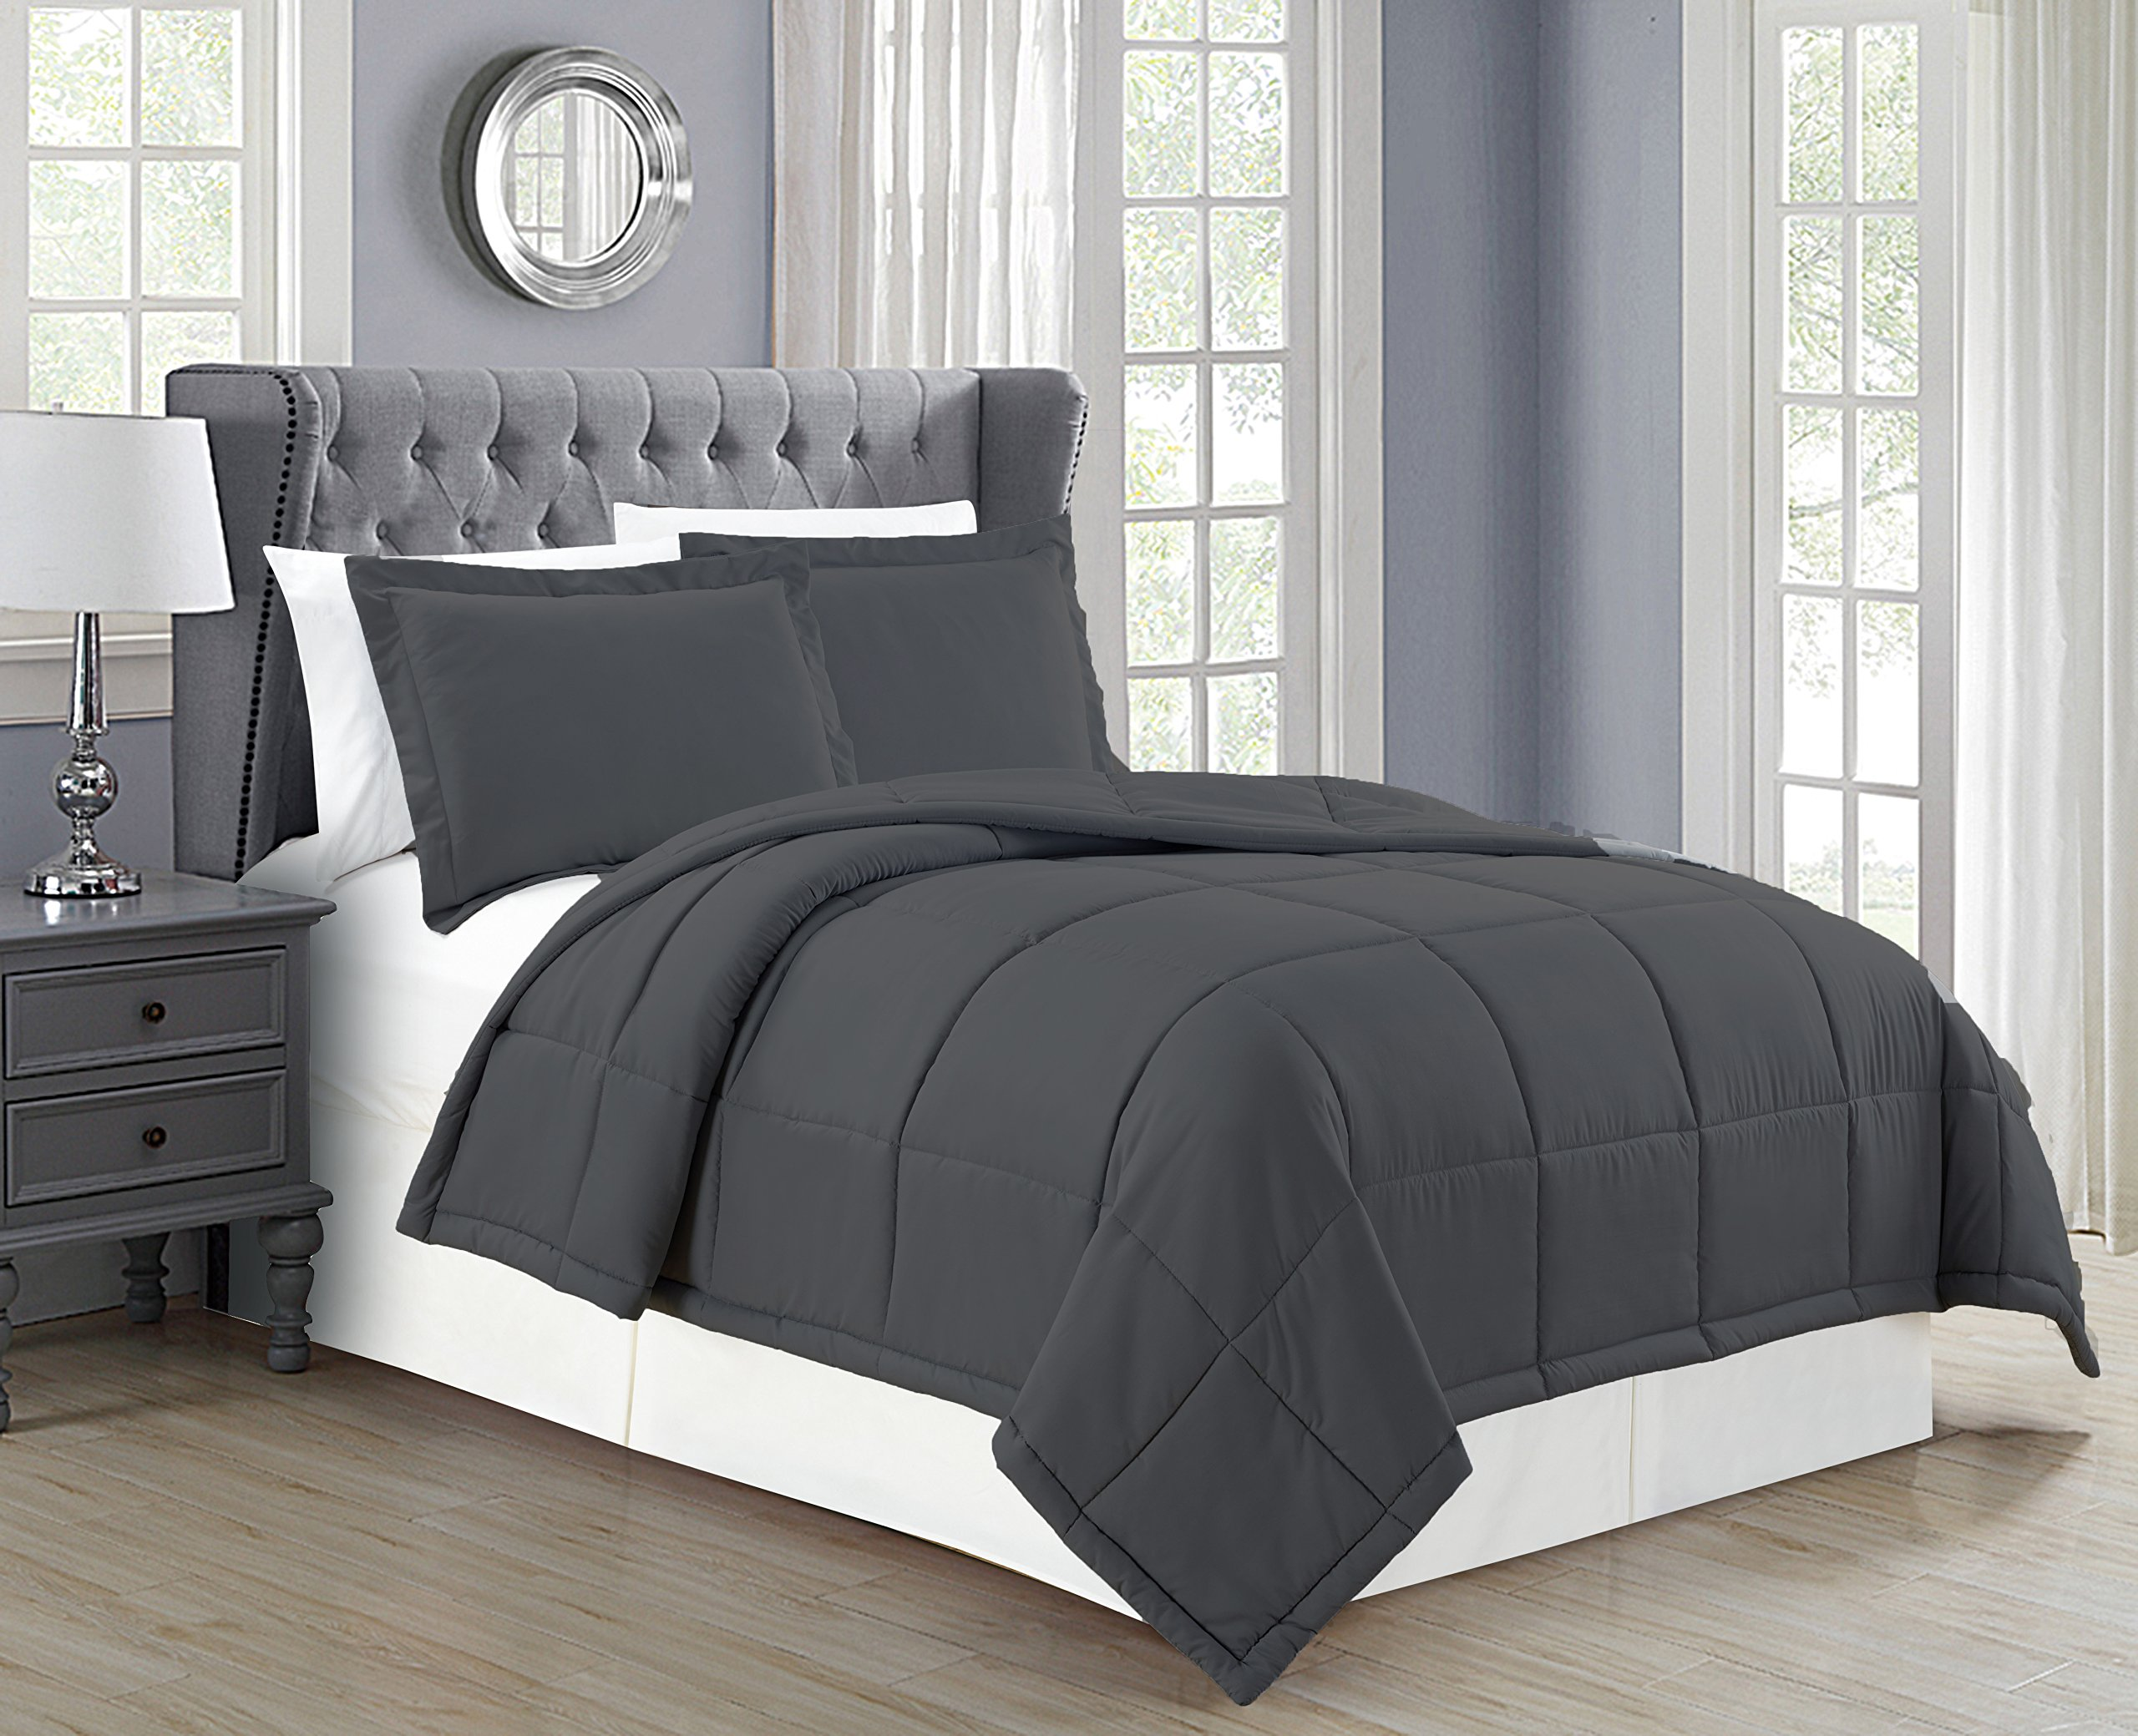 Mk Collection 3pc Full/Queen Down Alternative Comforter Set Solid Charcoal/Dark Grey New